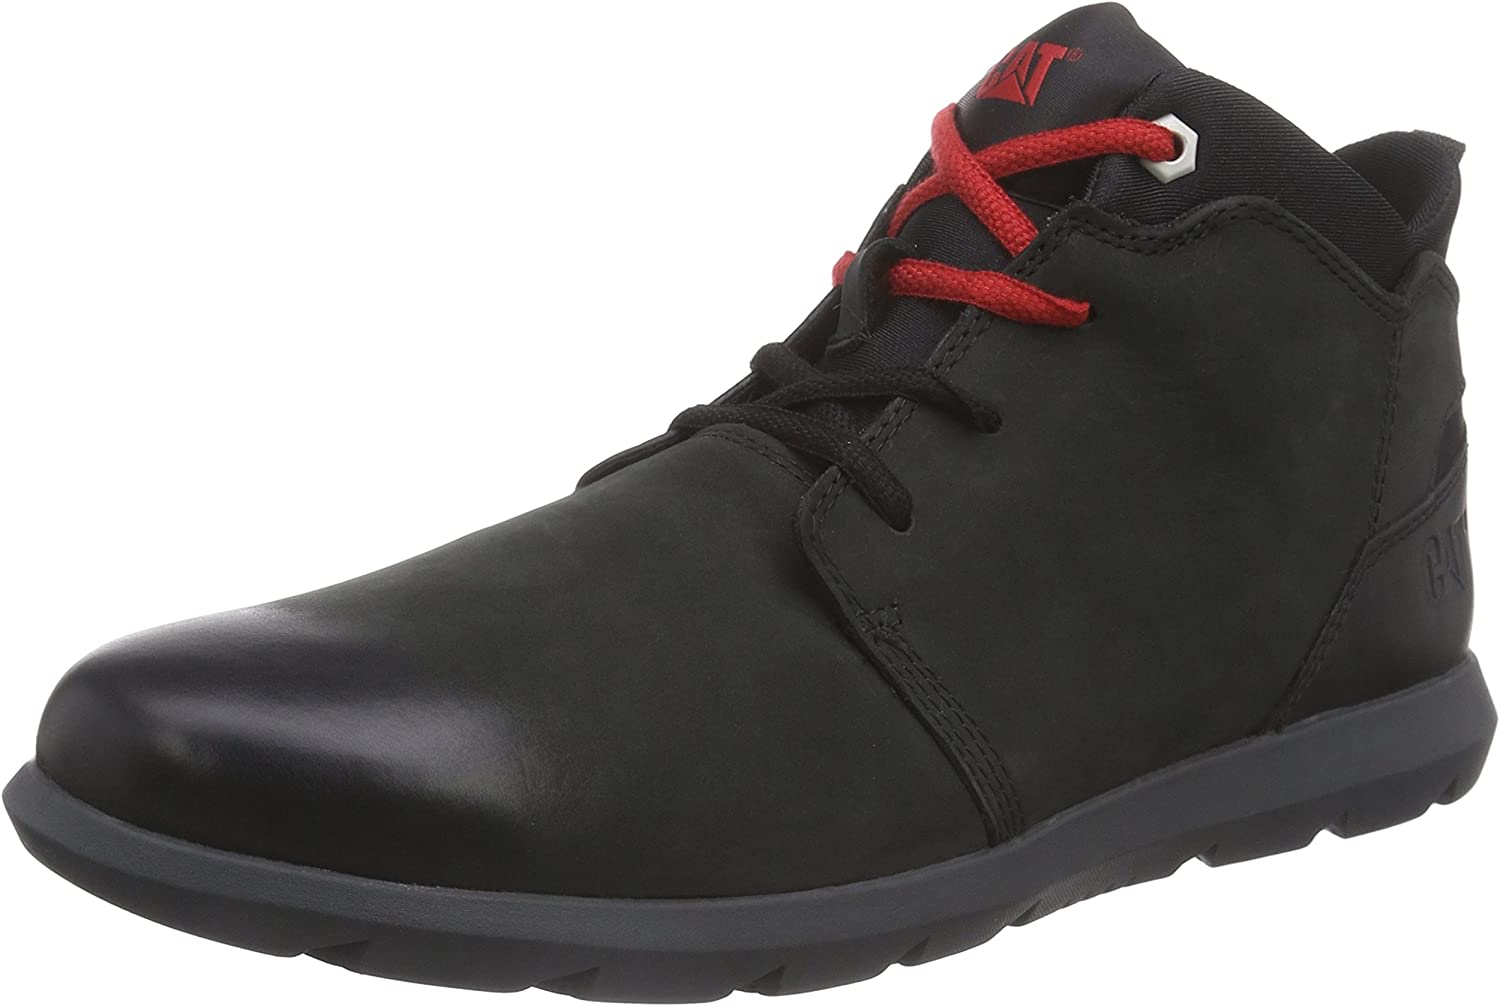 Caterpillar Men's Transcend Desert Boots